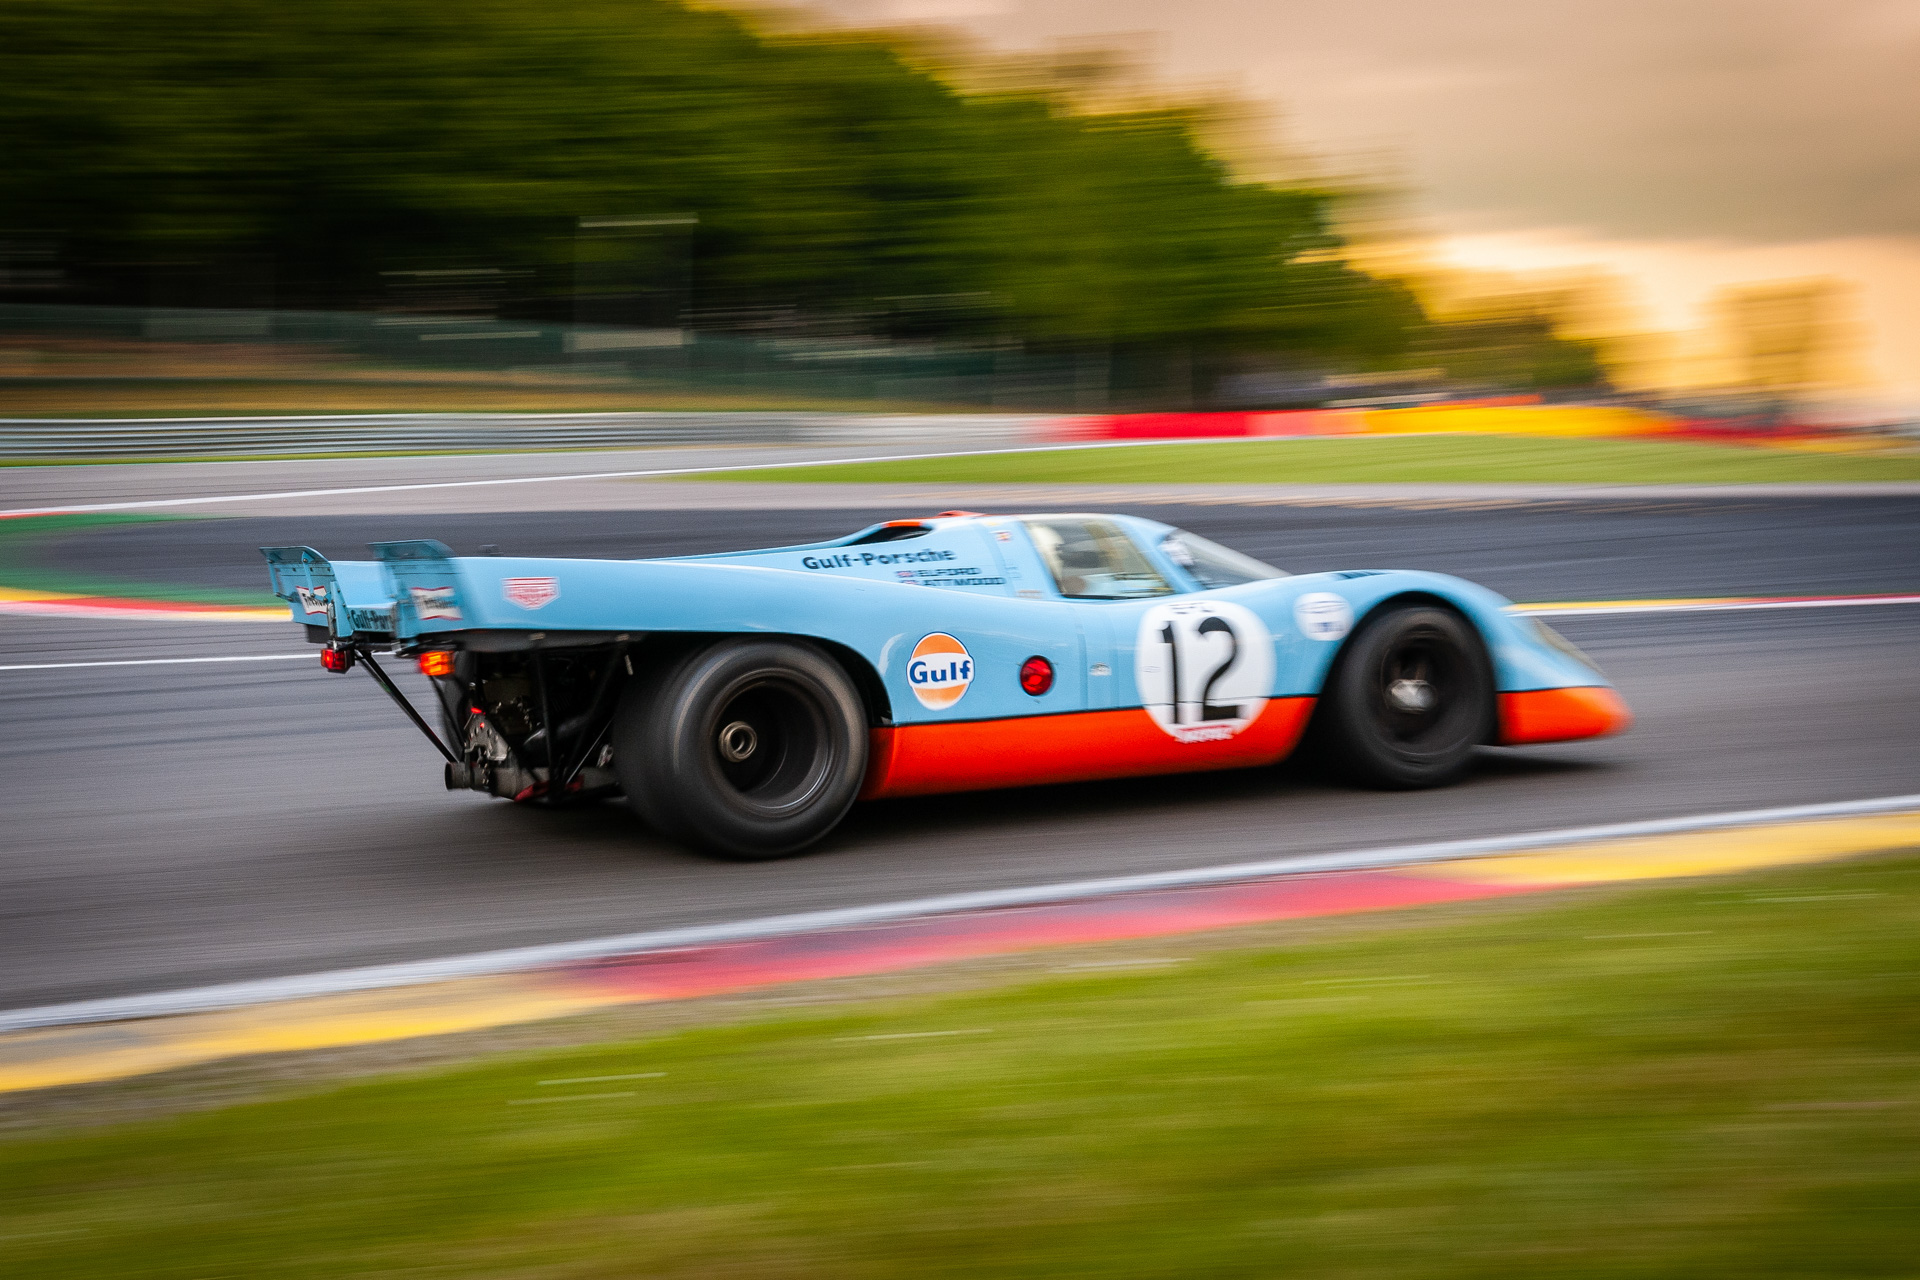 Historic Porsche 917 racing at the Spa-Classic